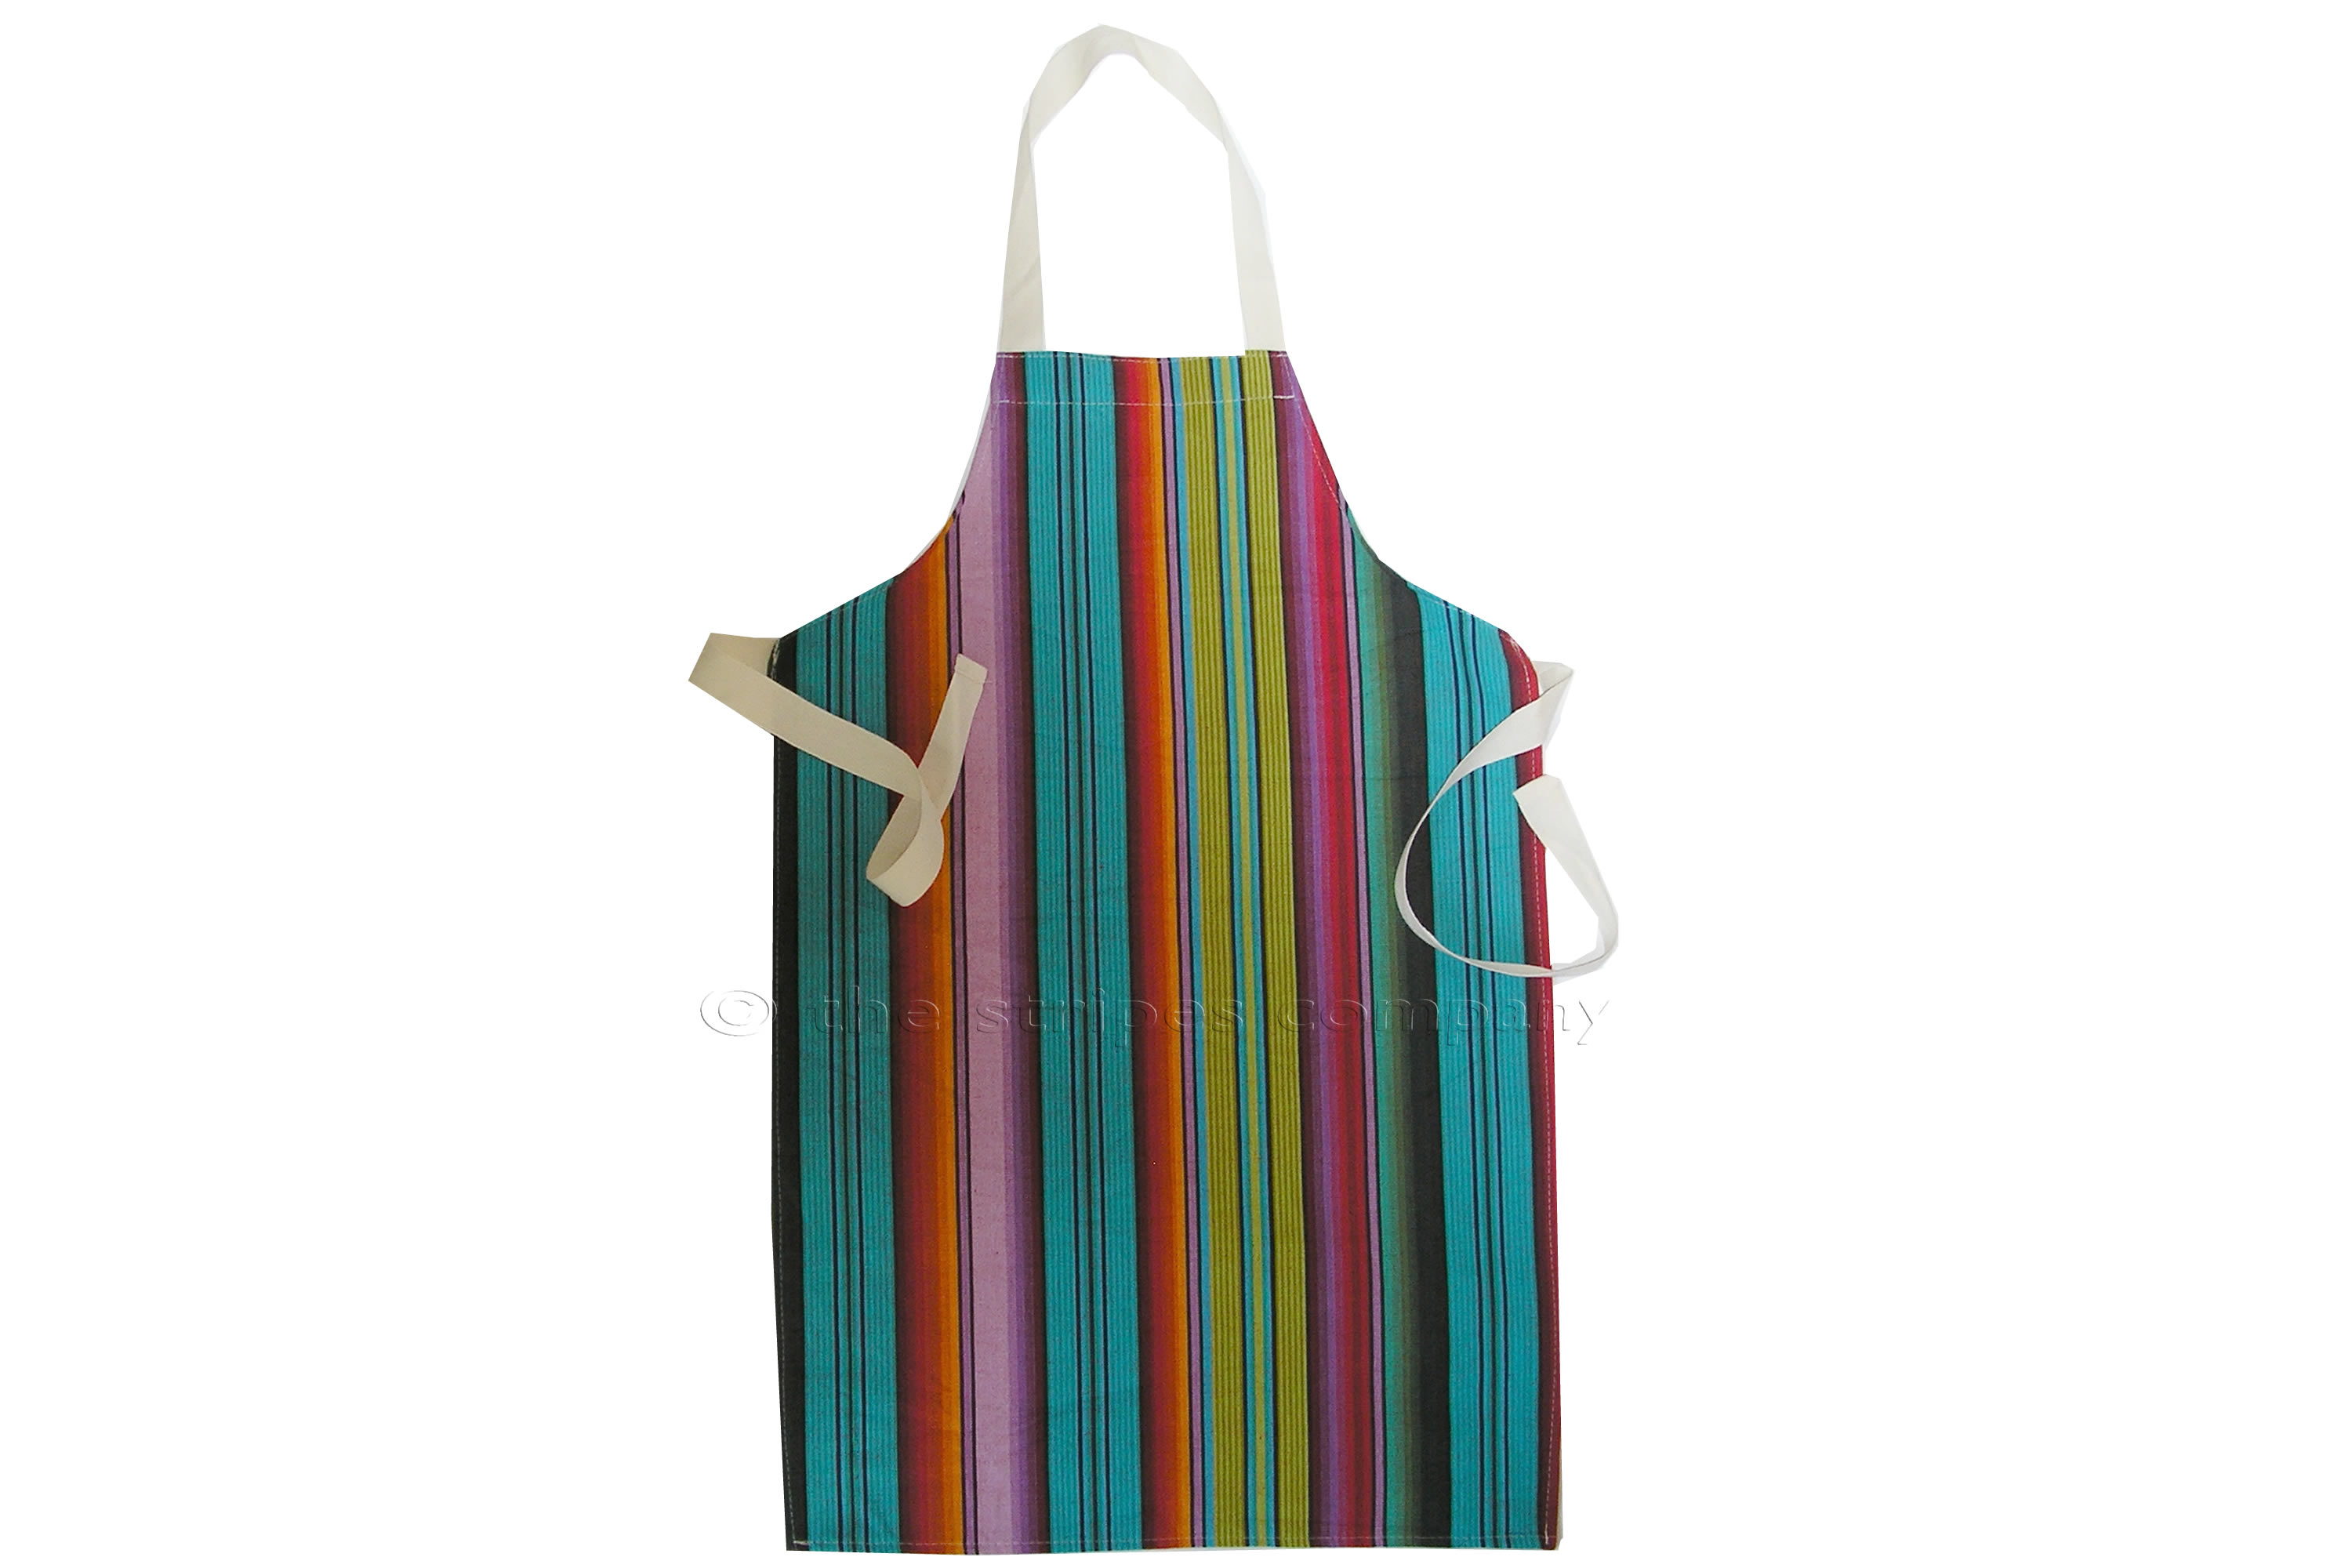 Blue Striped Kids Aprons | Aprons for Children Blue Green Orange Stripes